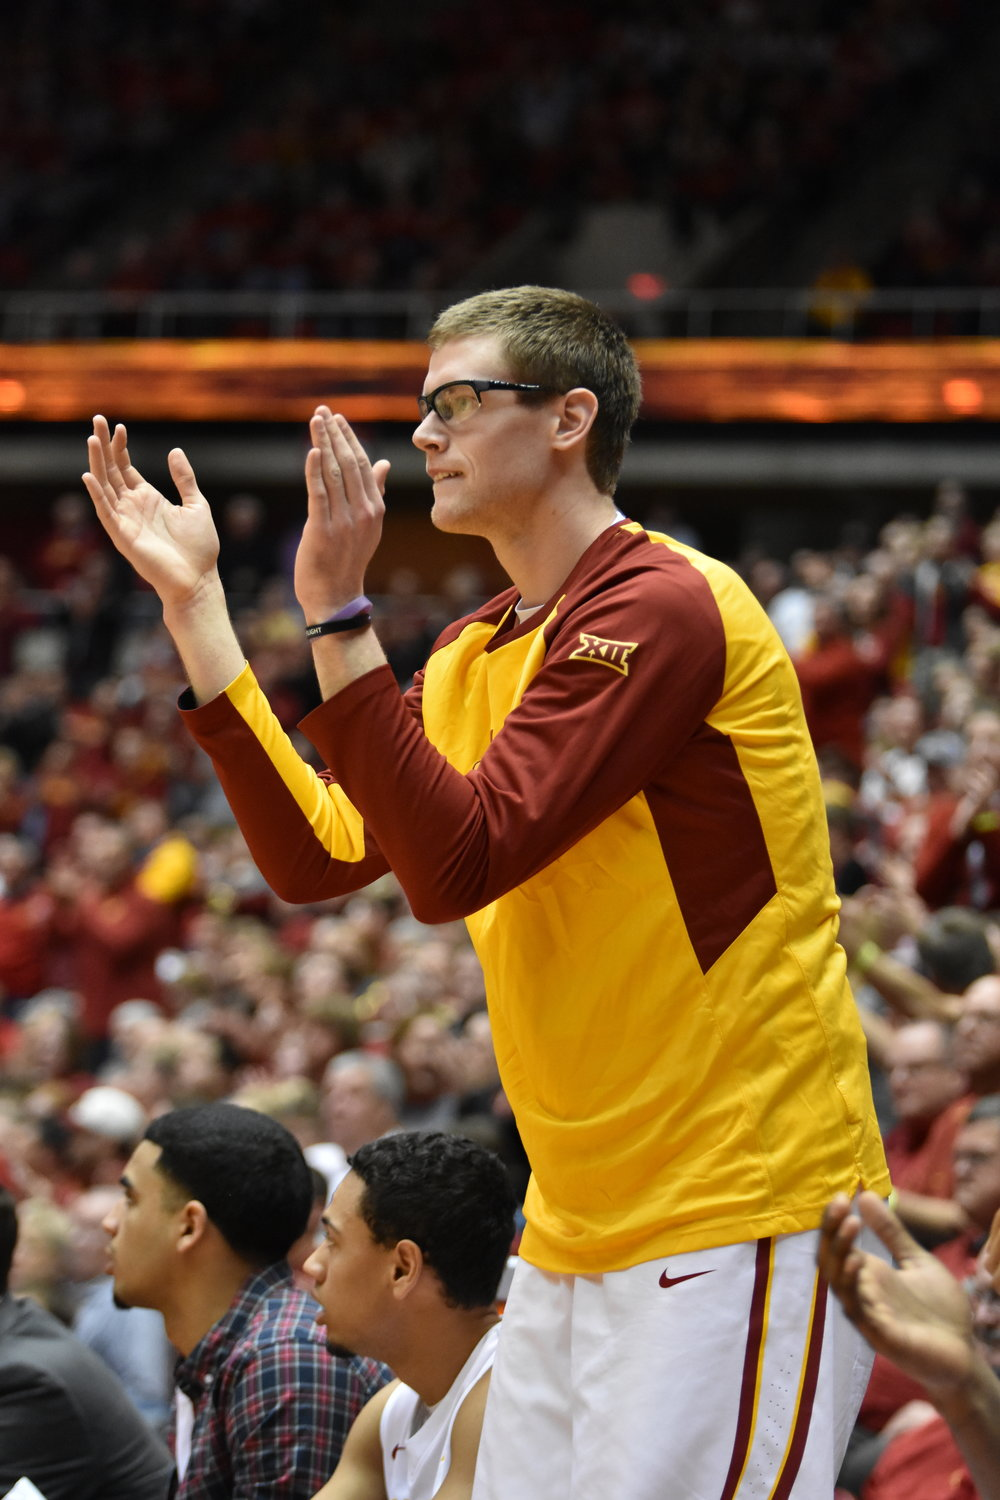 Stuart Nezlek cheers from the bench during the 2015-2016 season. Photo by Lani Tons/Iowa State Daily